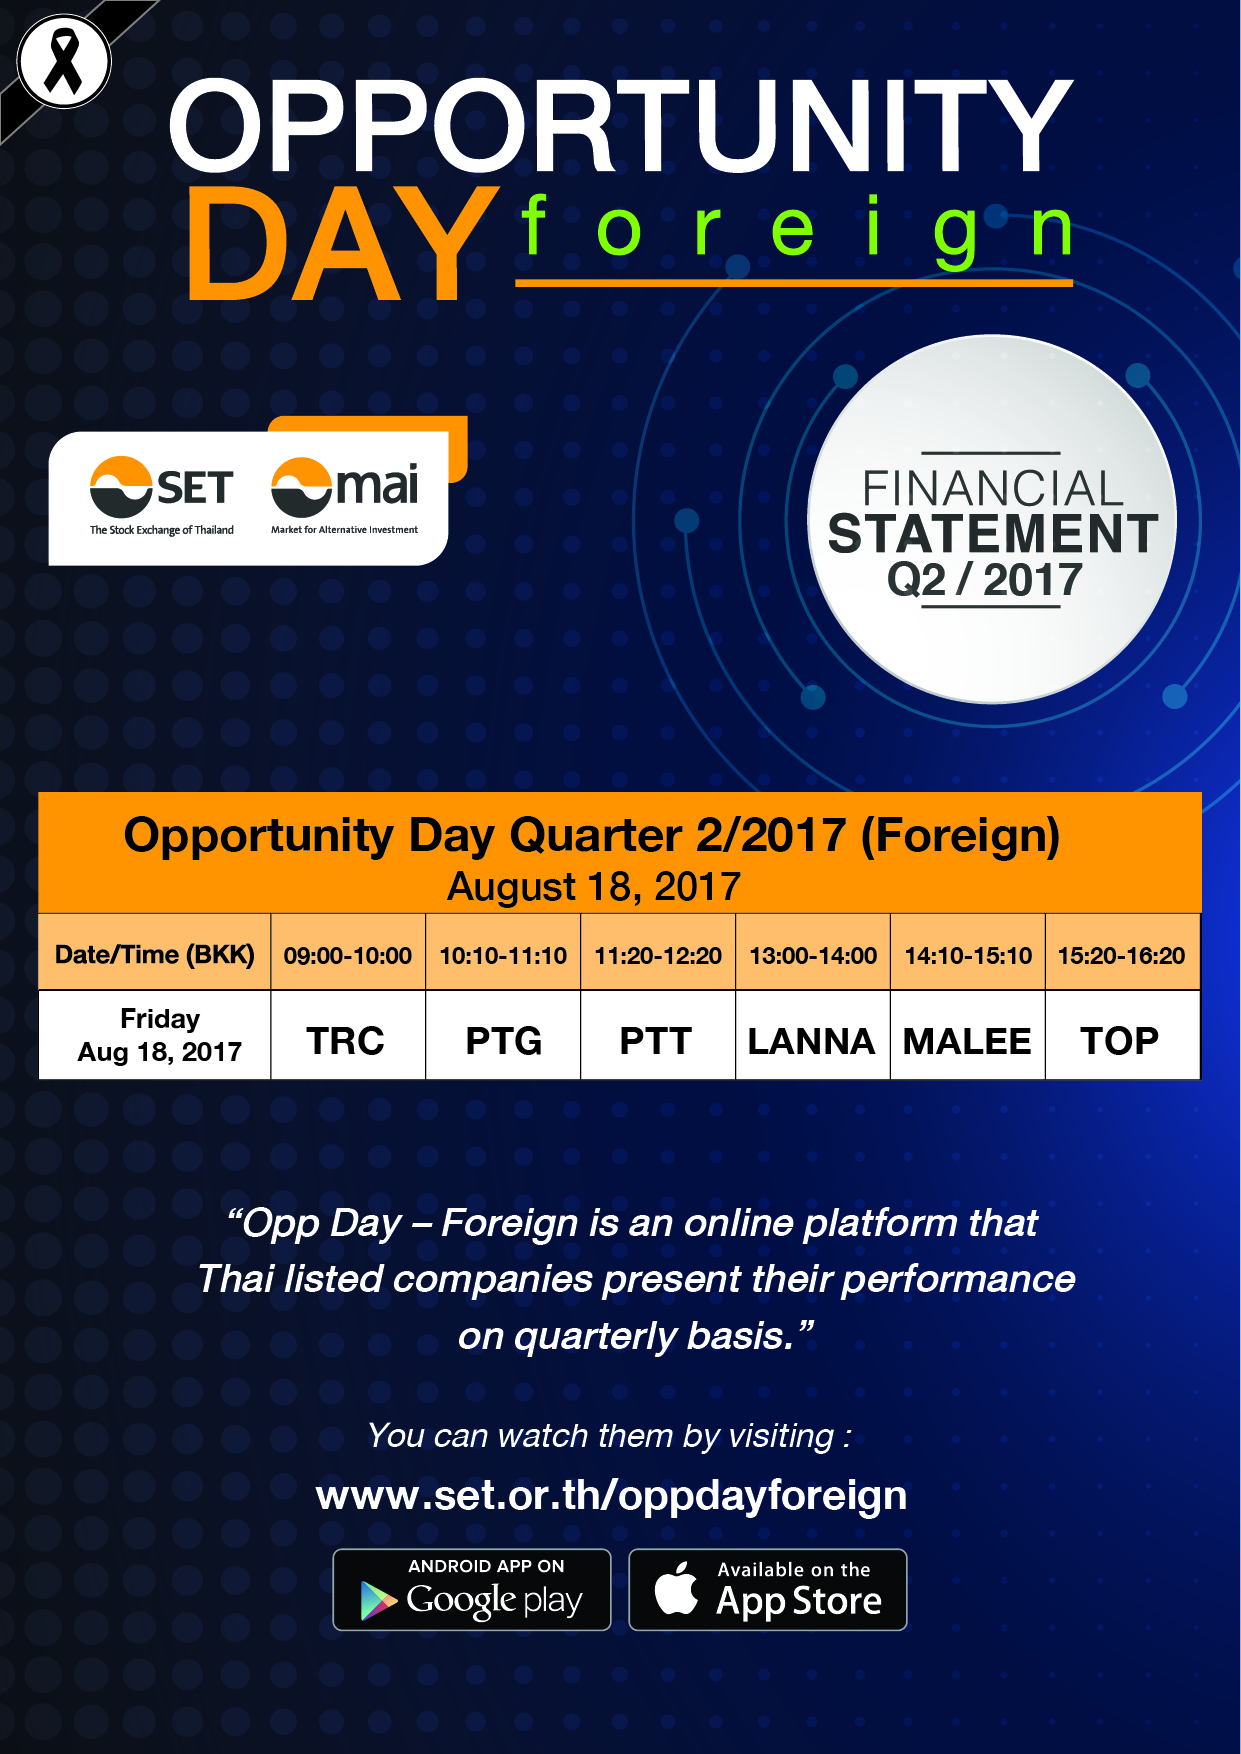 Oppportunity Day